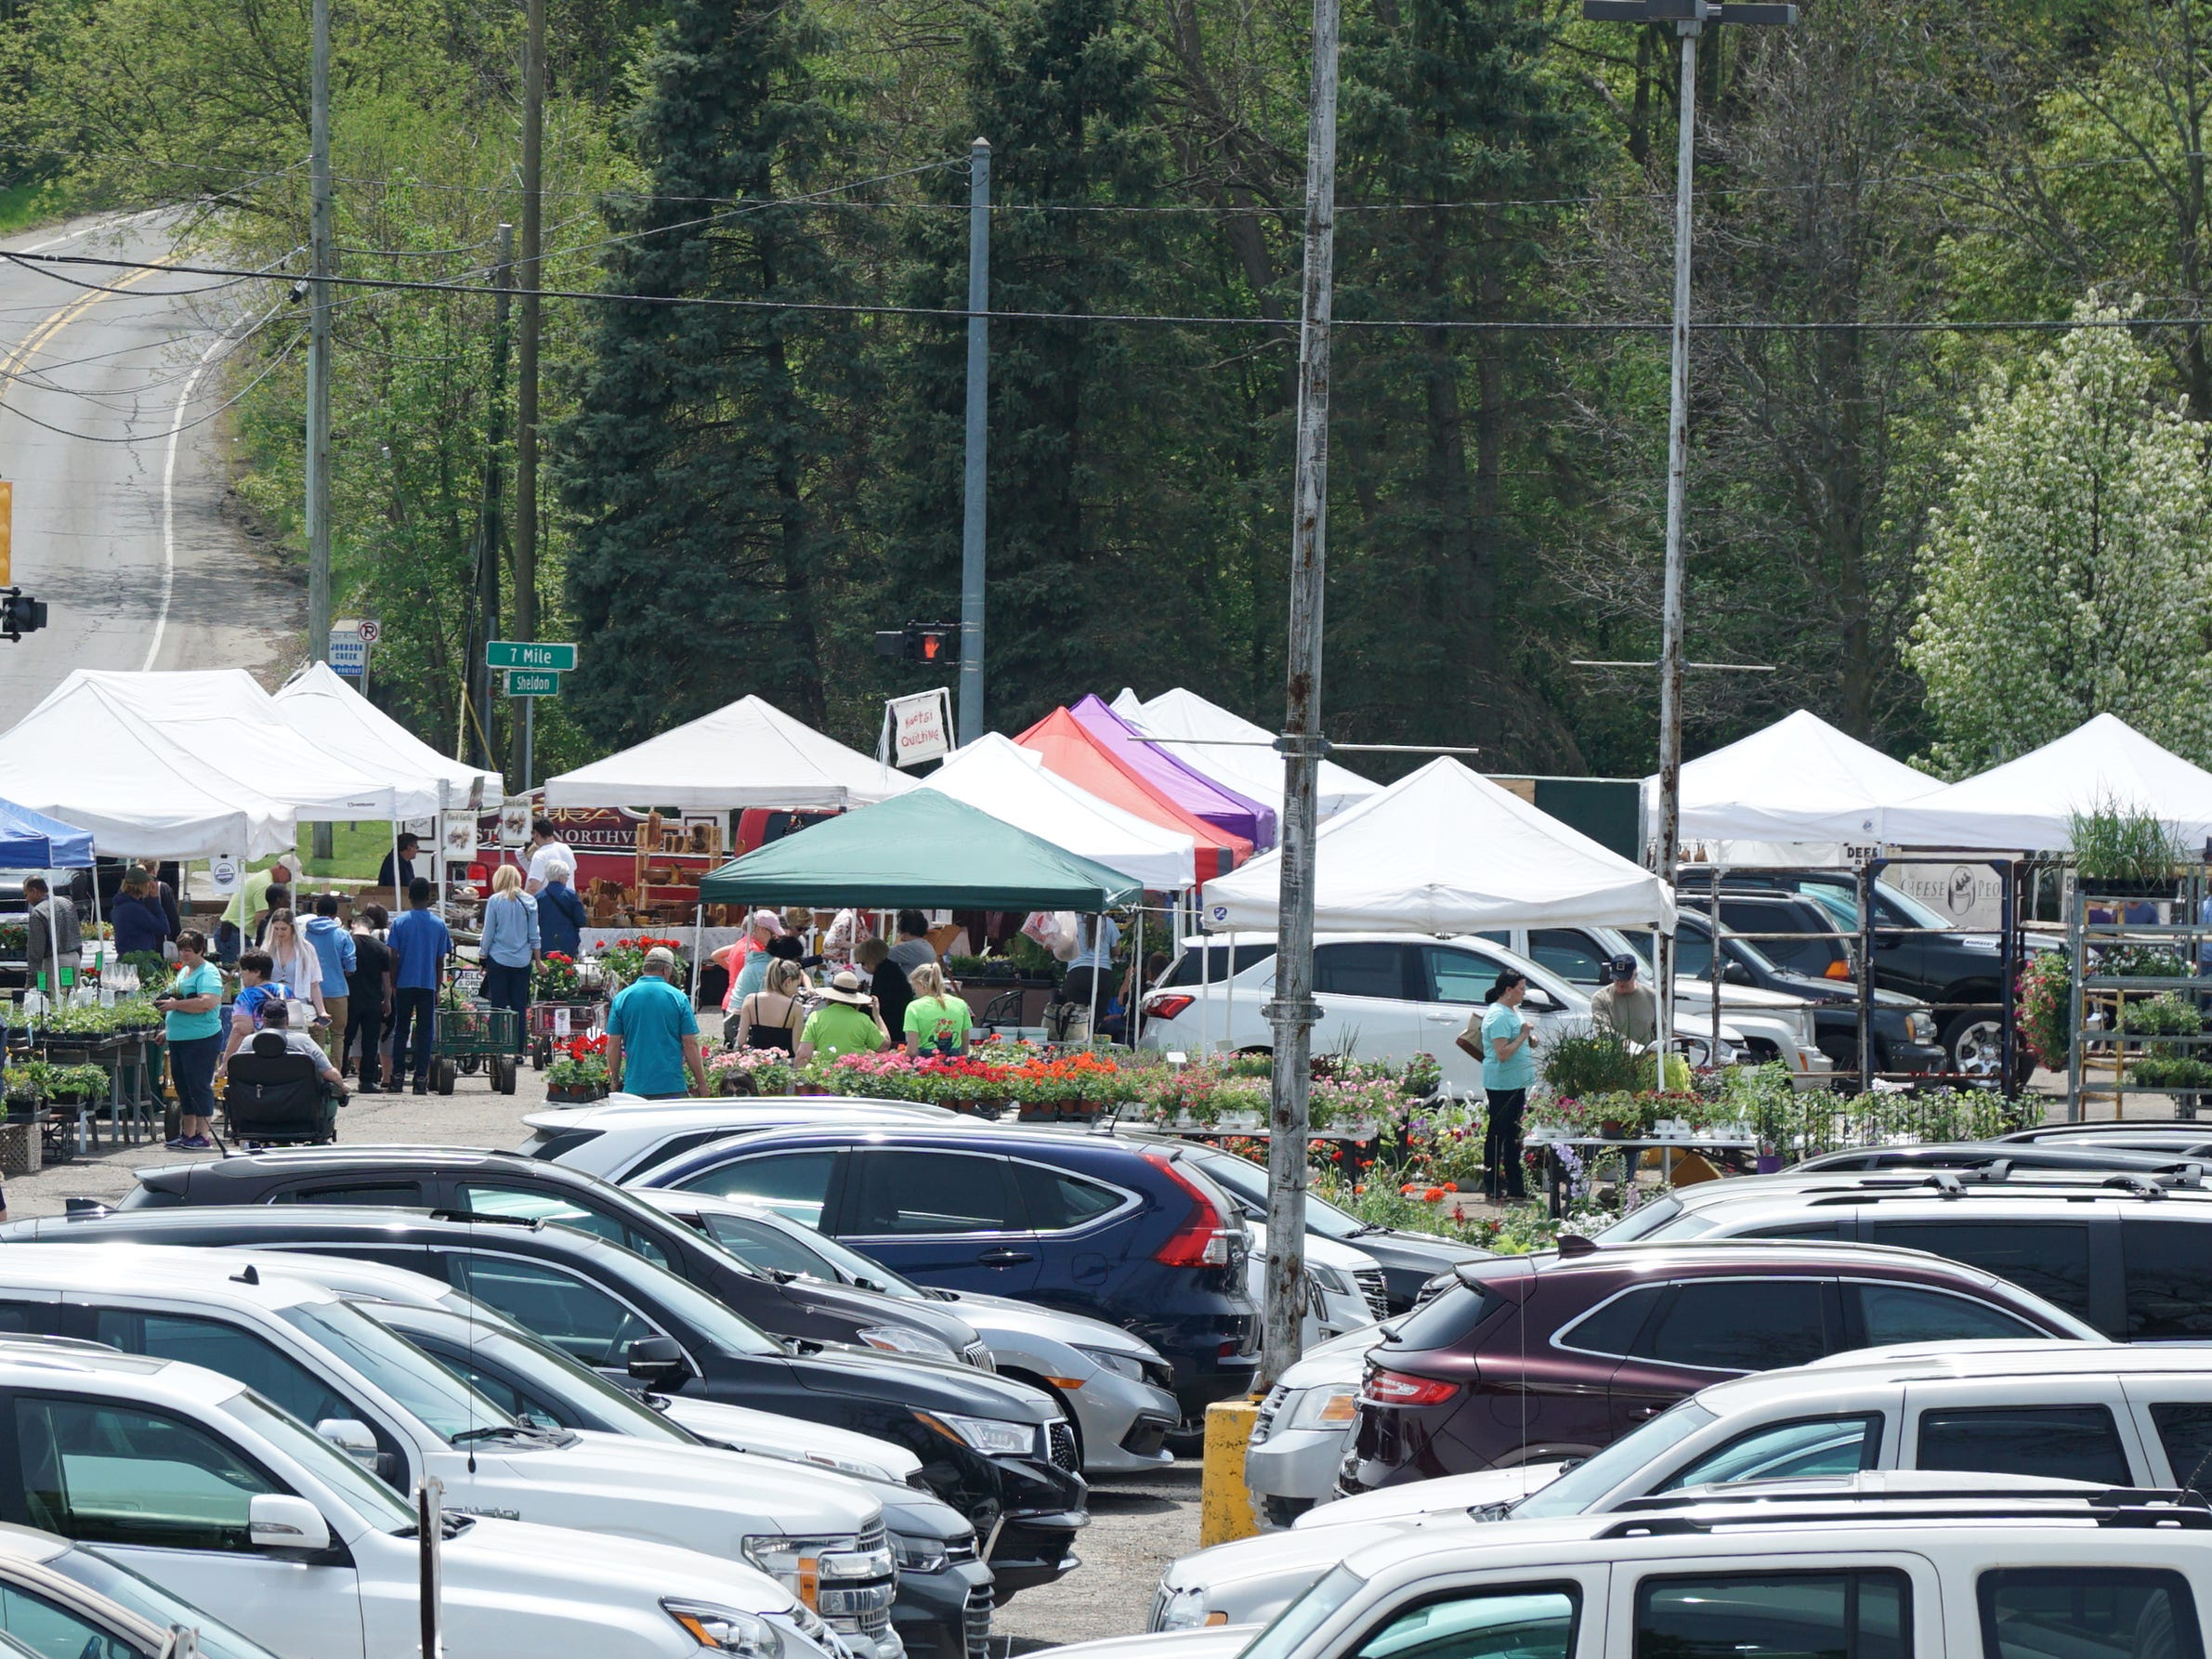 The Northville Farmers Market underway on May 16, 2019. The Chamber of Commerce-sponsored event takes place every Thursday from 8 am-3 pm through October. Shoppers can find the market at the southwest corner of Center and Seven Mile in Northville.